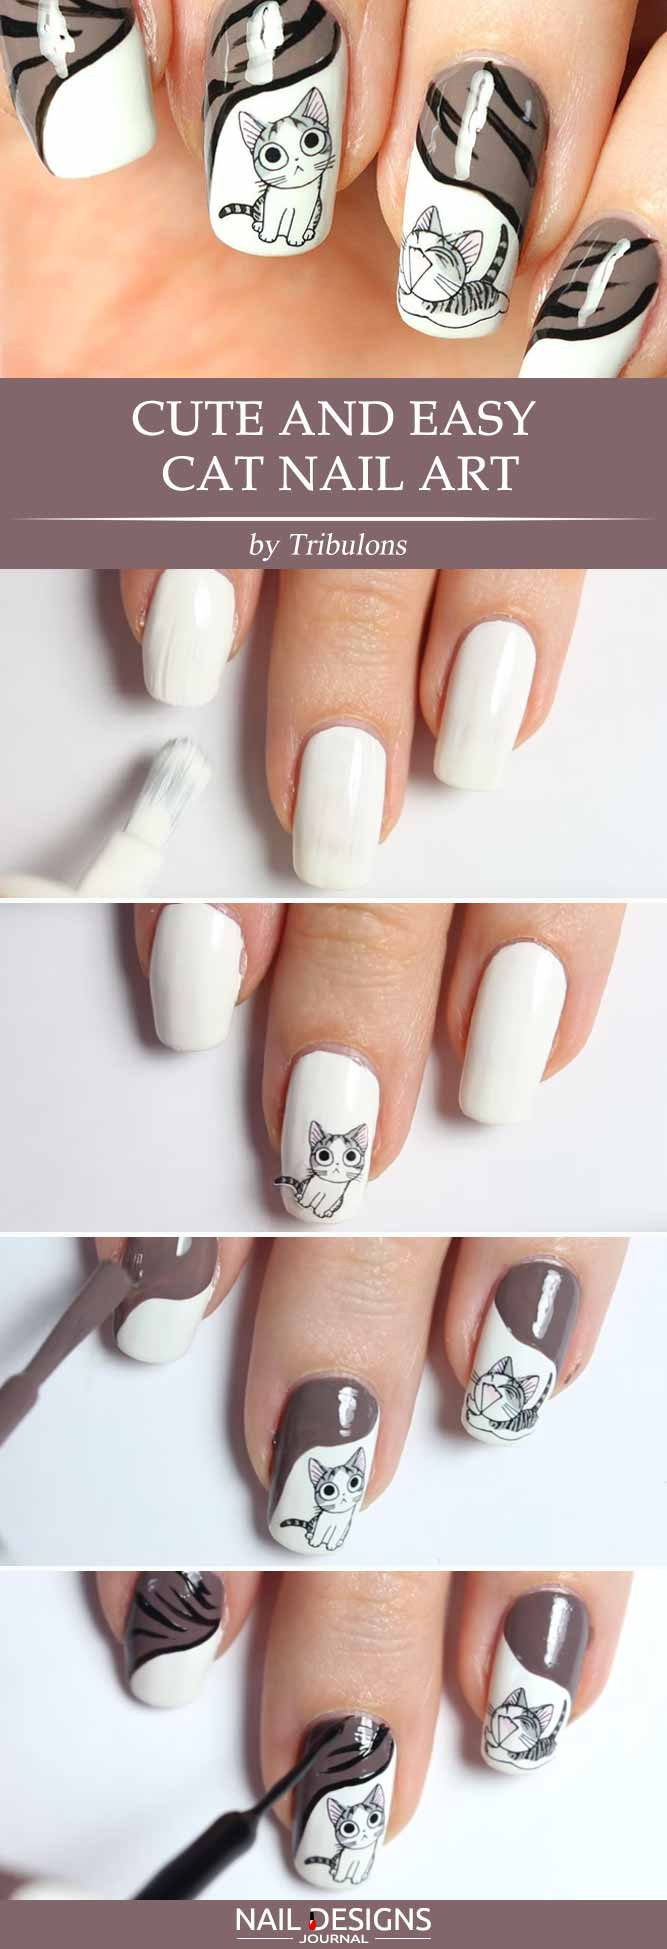 20 Cute Nails Designs Ideas Not To Miss | NailDesignsJournal.com